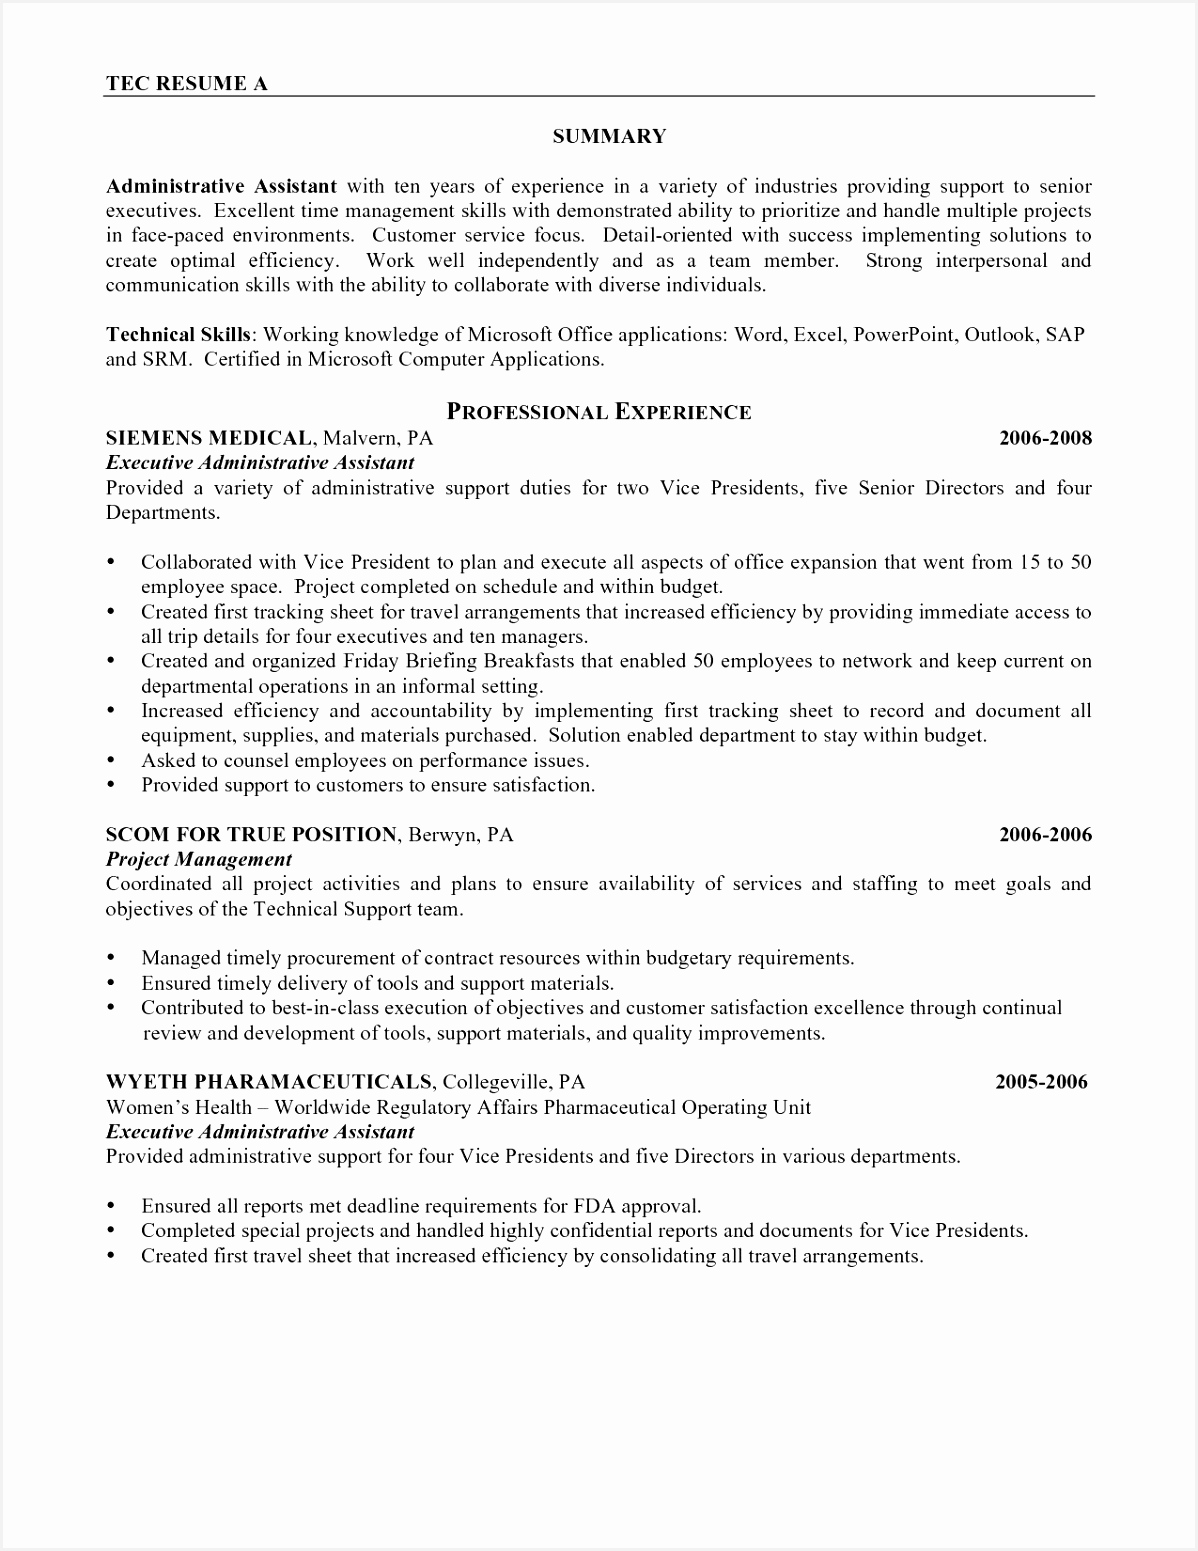 Help with Resumes and Cover Letters Nsabh Awesome Best Resume Cover Letter Examples15511198